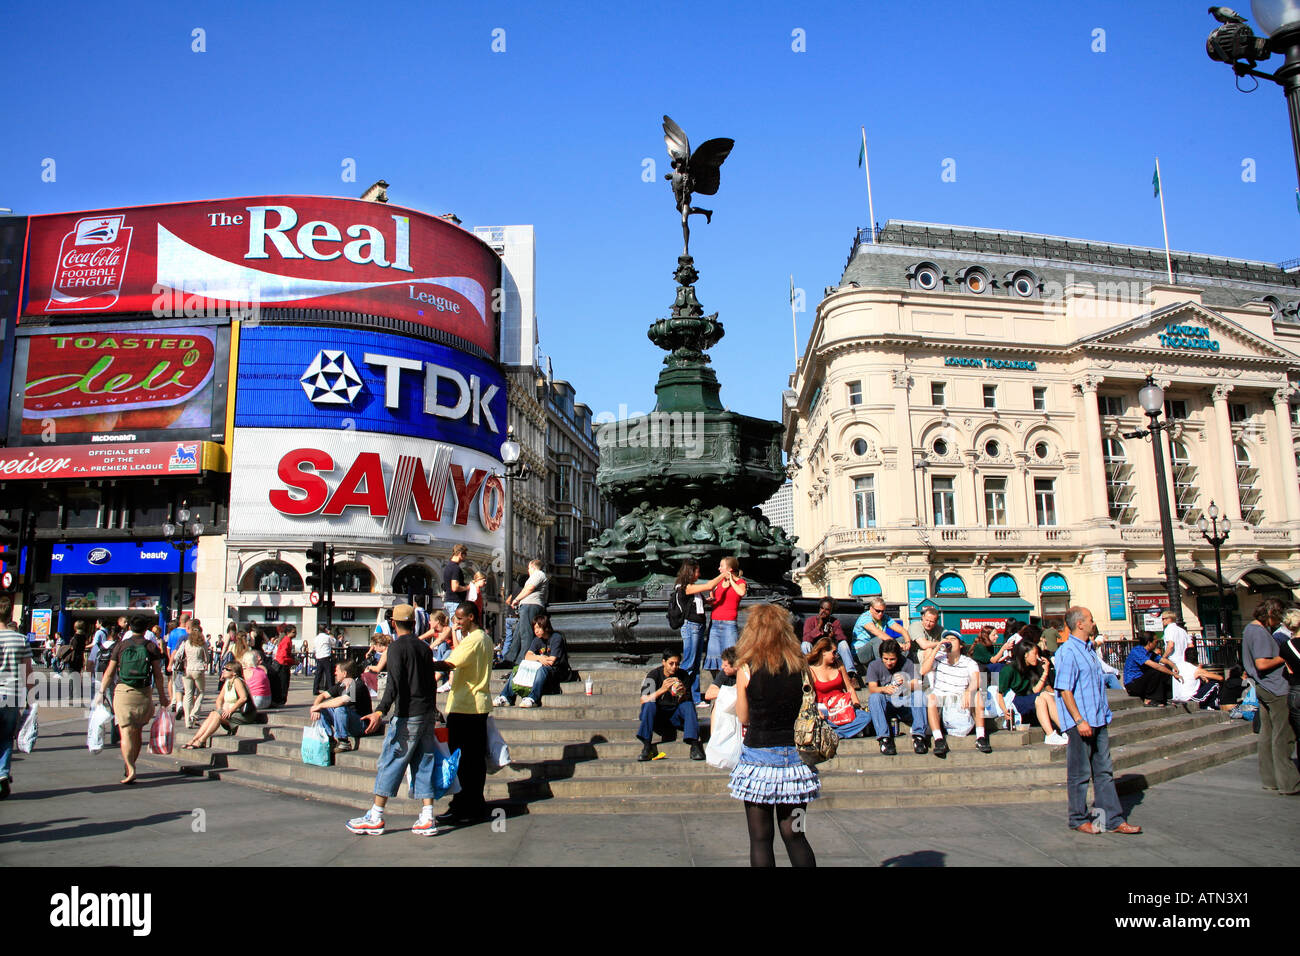 Piccadilly Circus in the centre of London - Stock Image